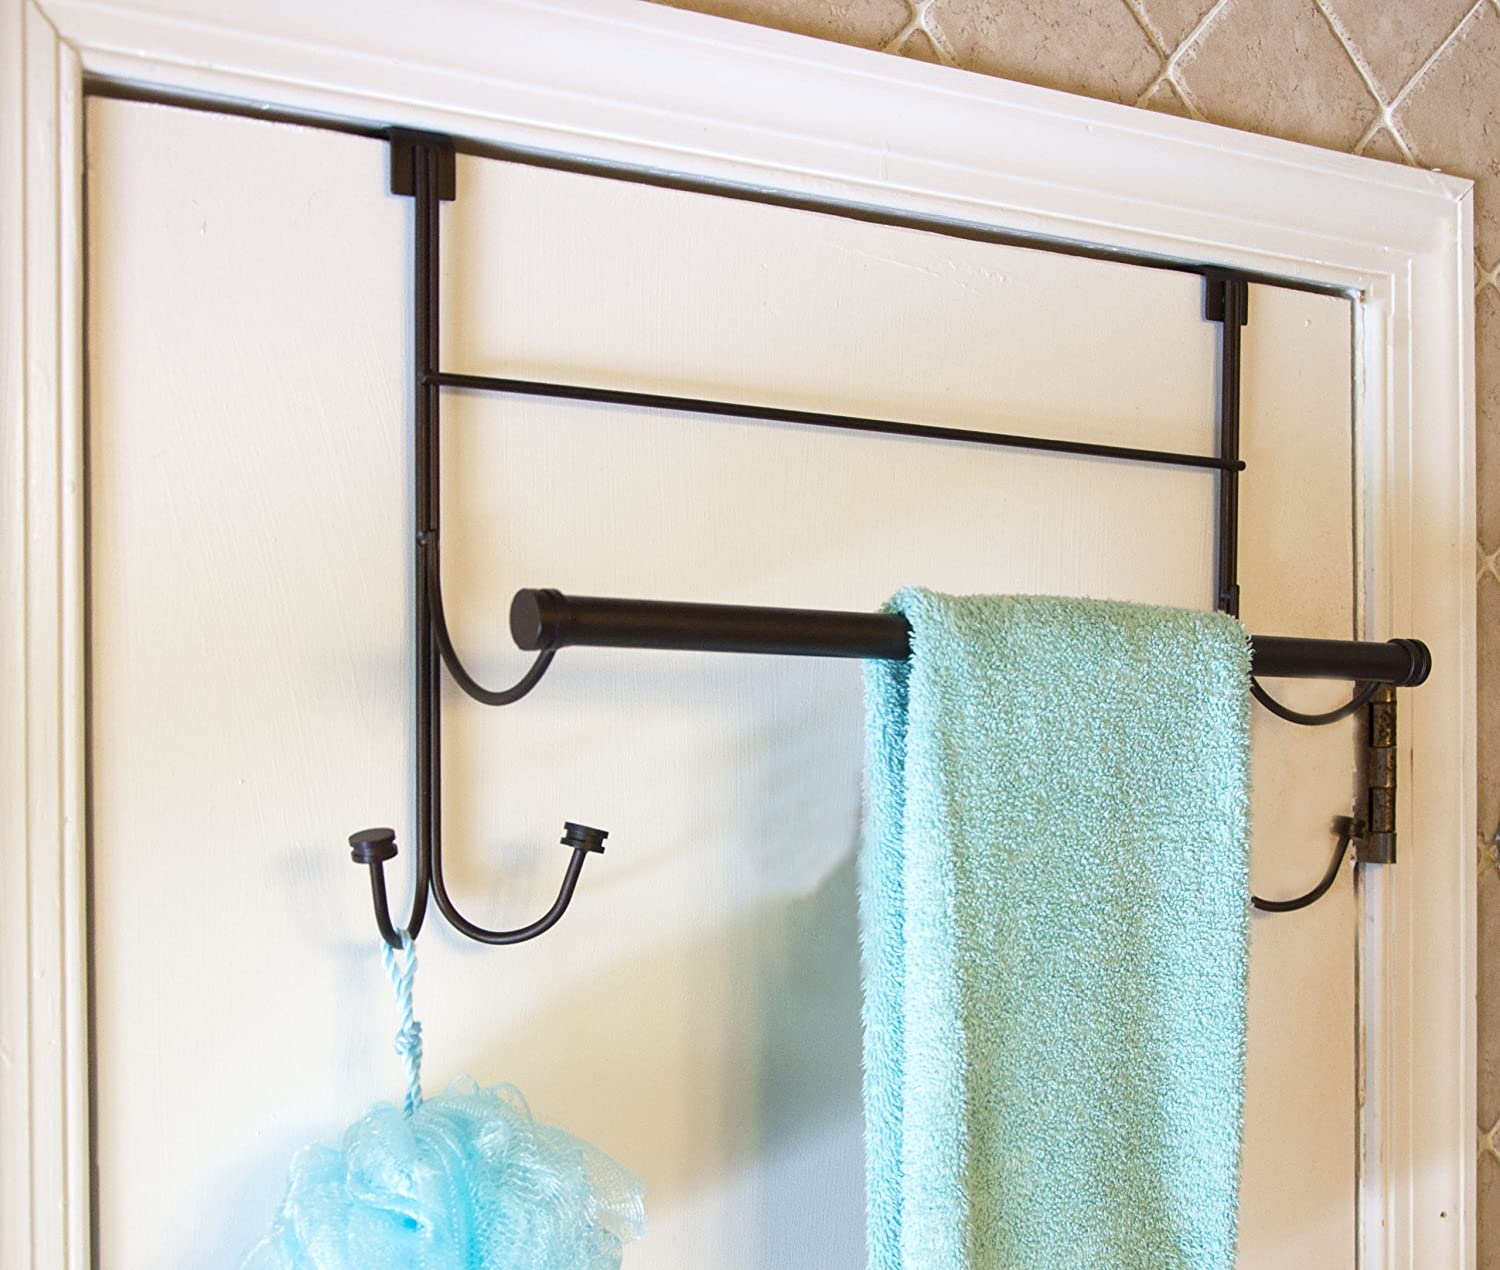 Uncategorized Towel Hangers For Doors amazon com bathsense over the door towel rack with 4 hooks oil rubbed bronze home kitchen